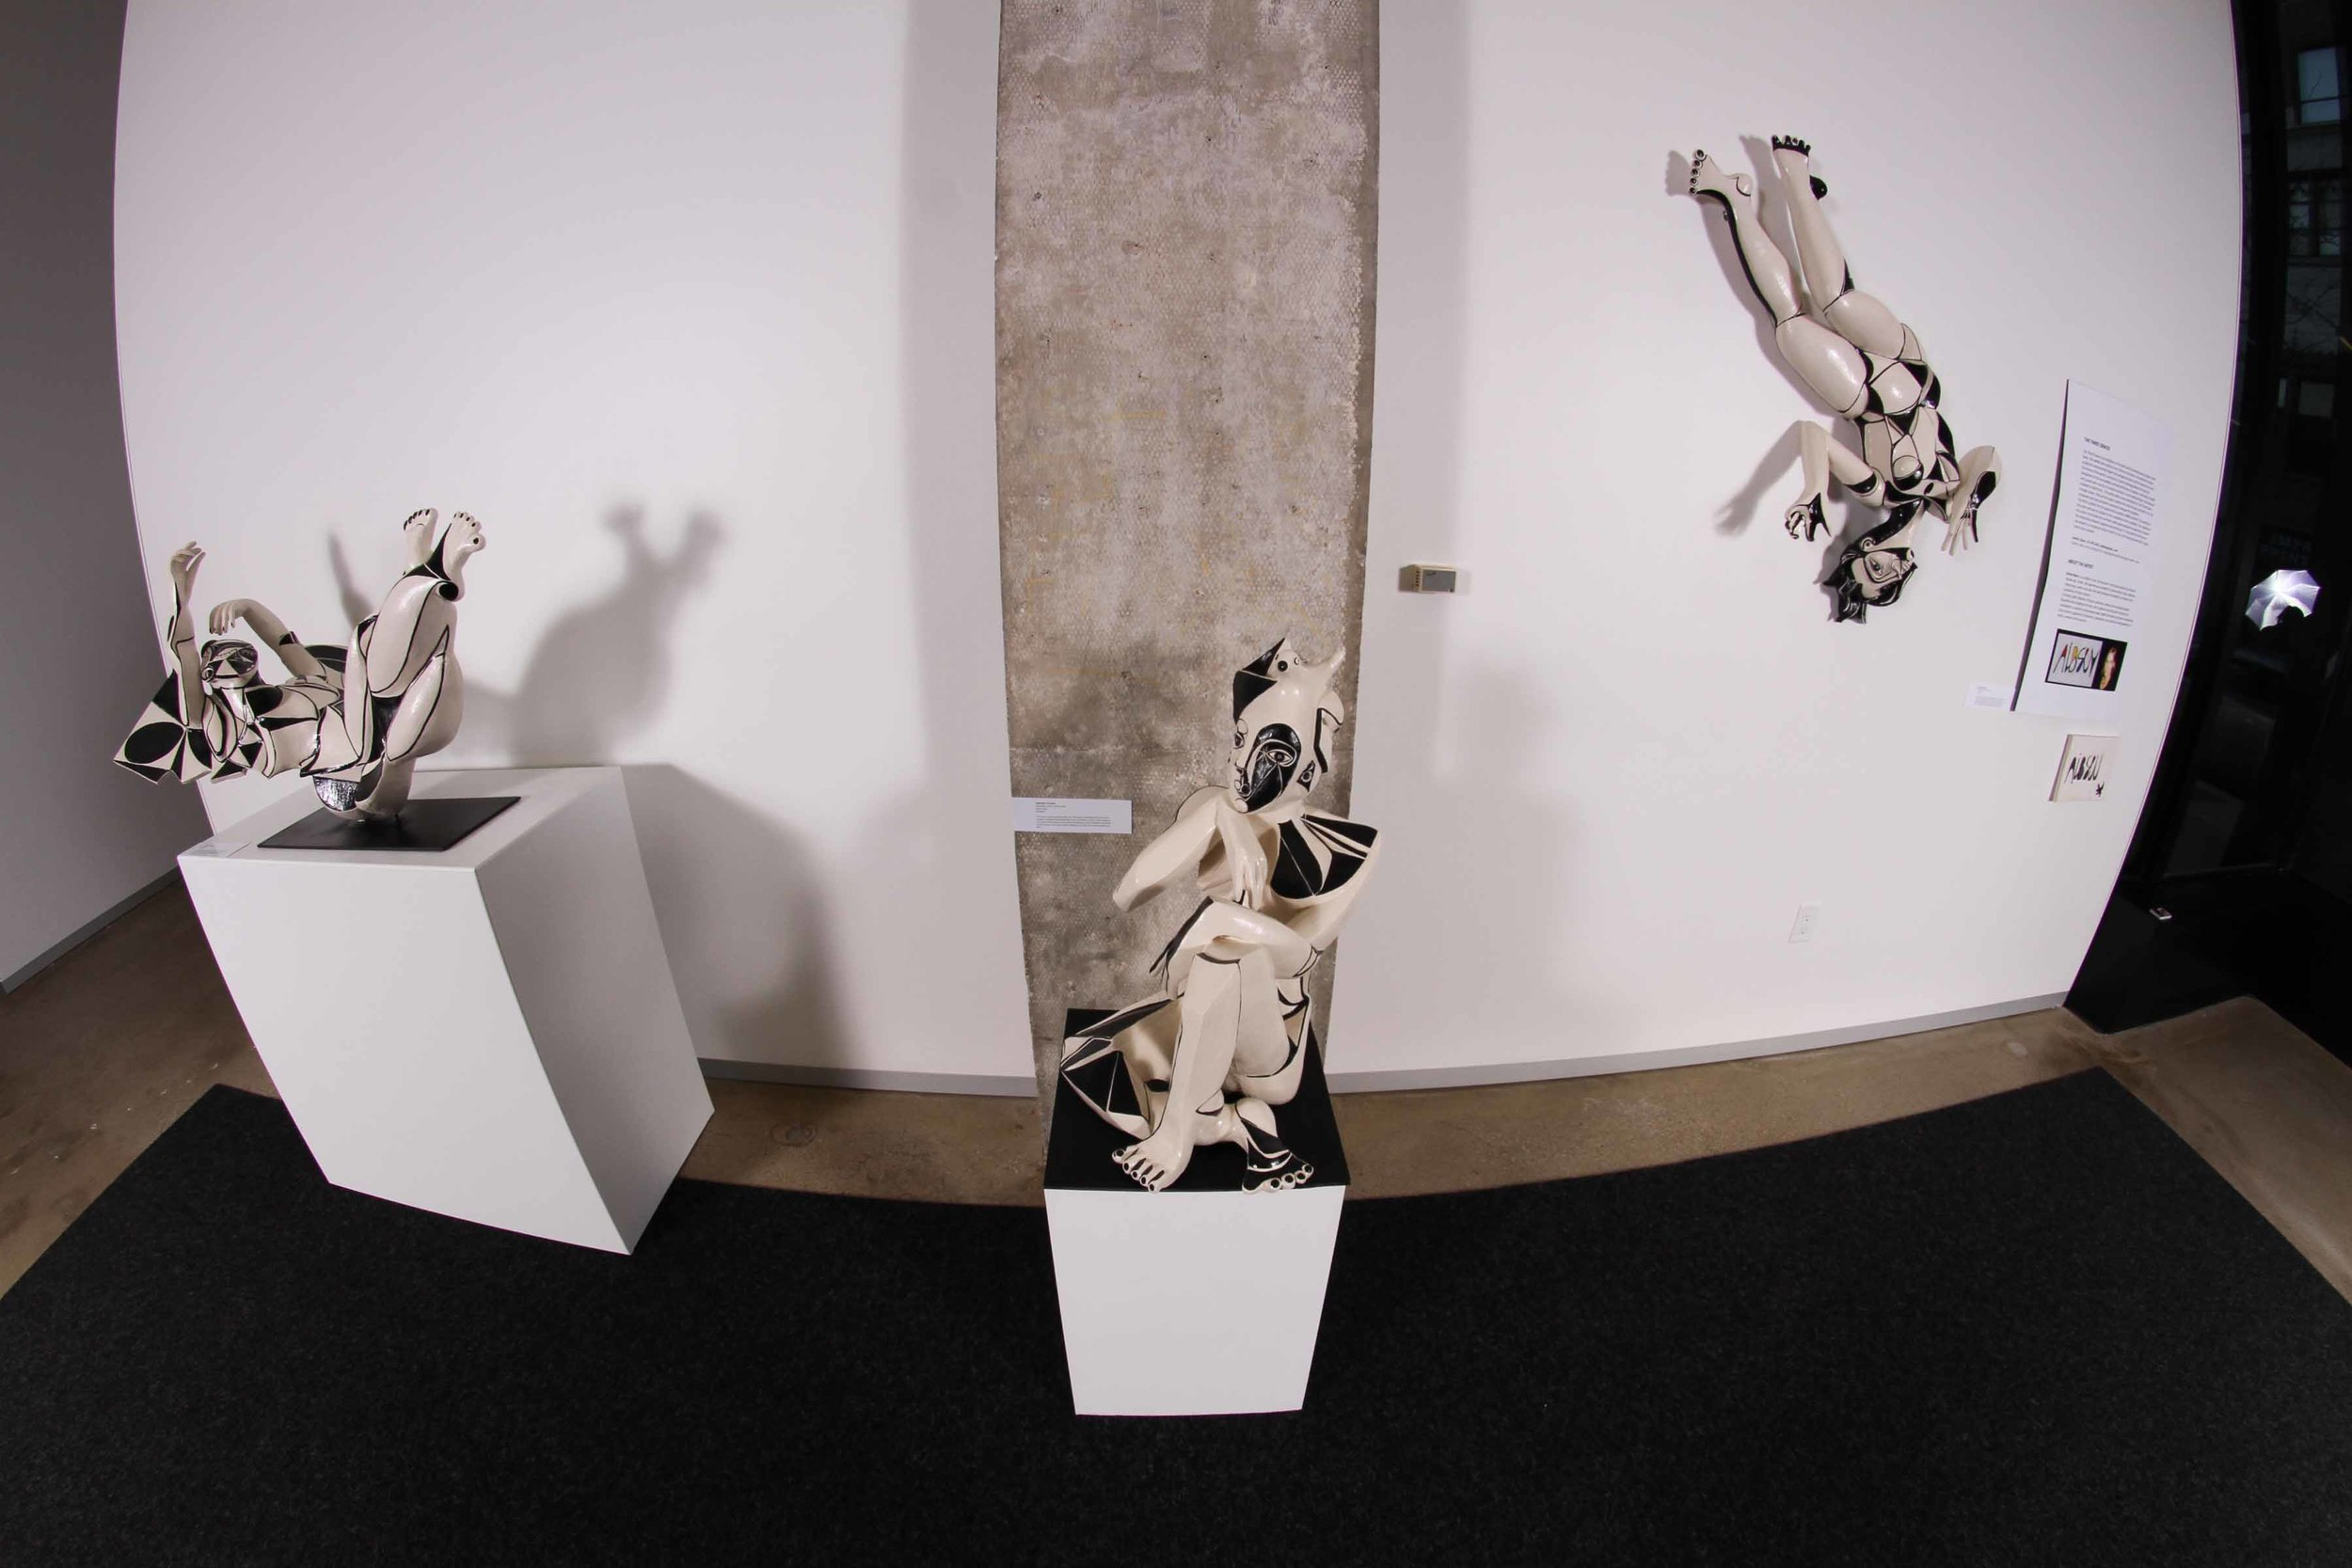 Installation of The Three Graces at BNIM